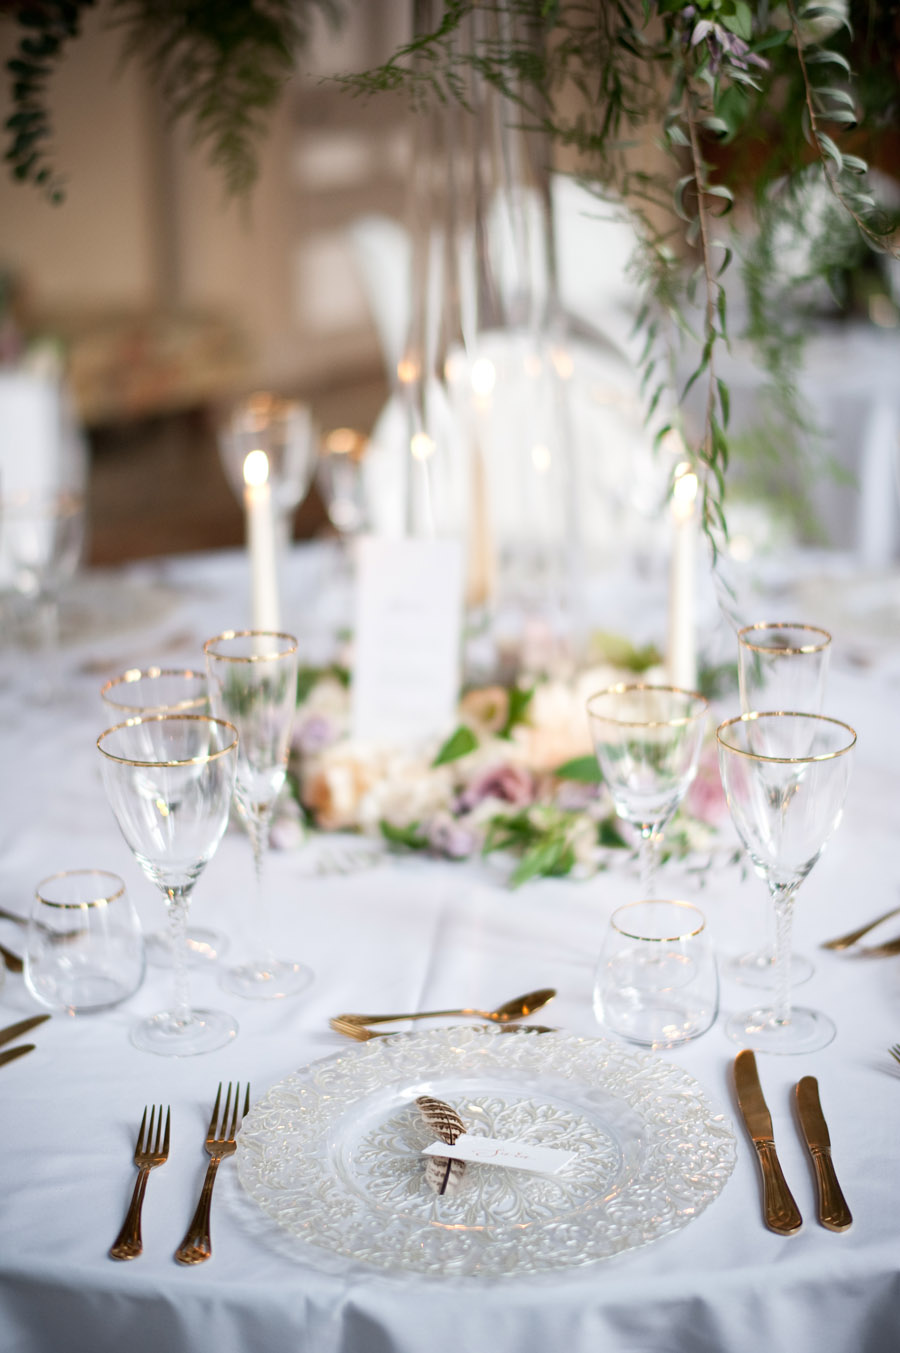 Luxe, modern wedding style ideas by Natalie Hewitt, image credit Rachael Connerton Photography (15)